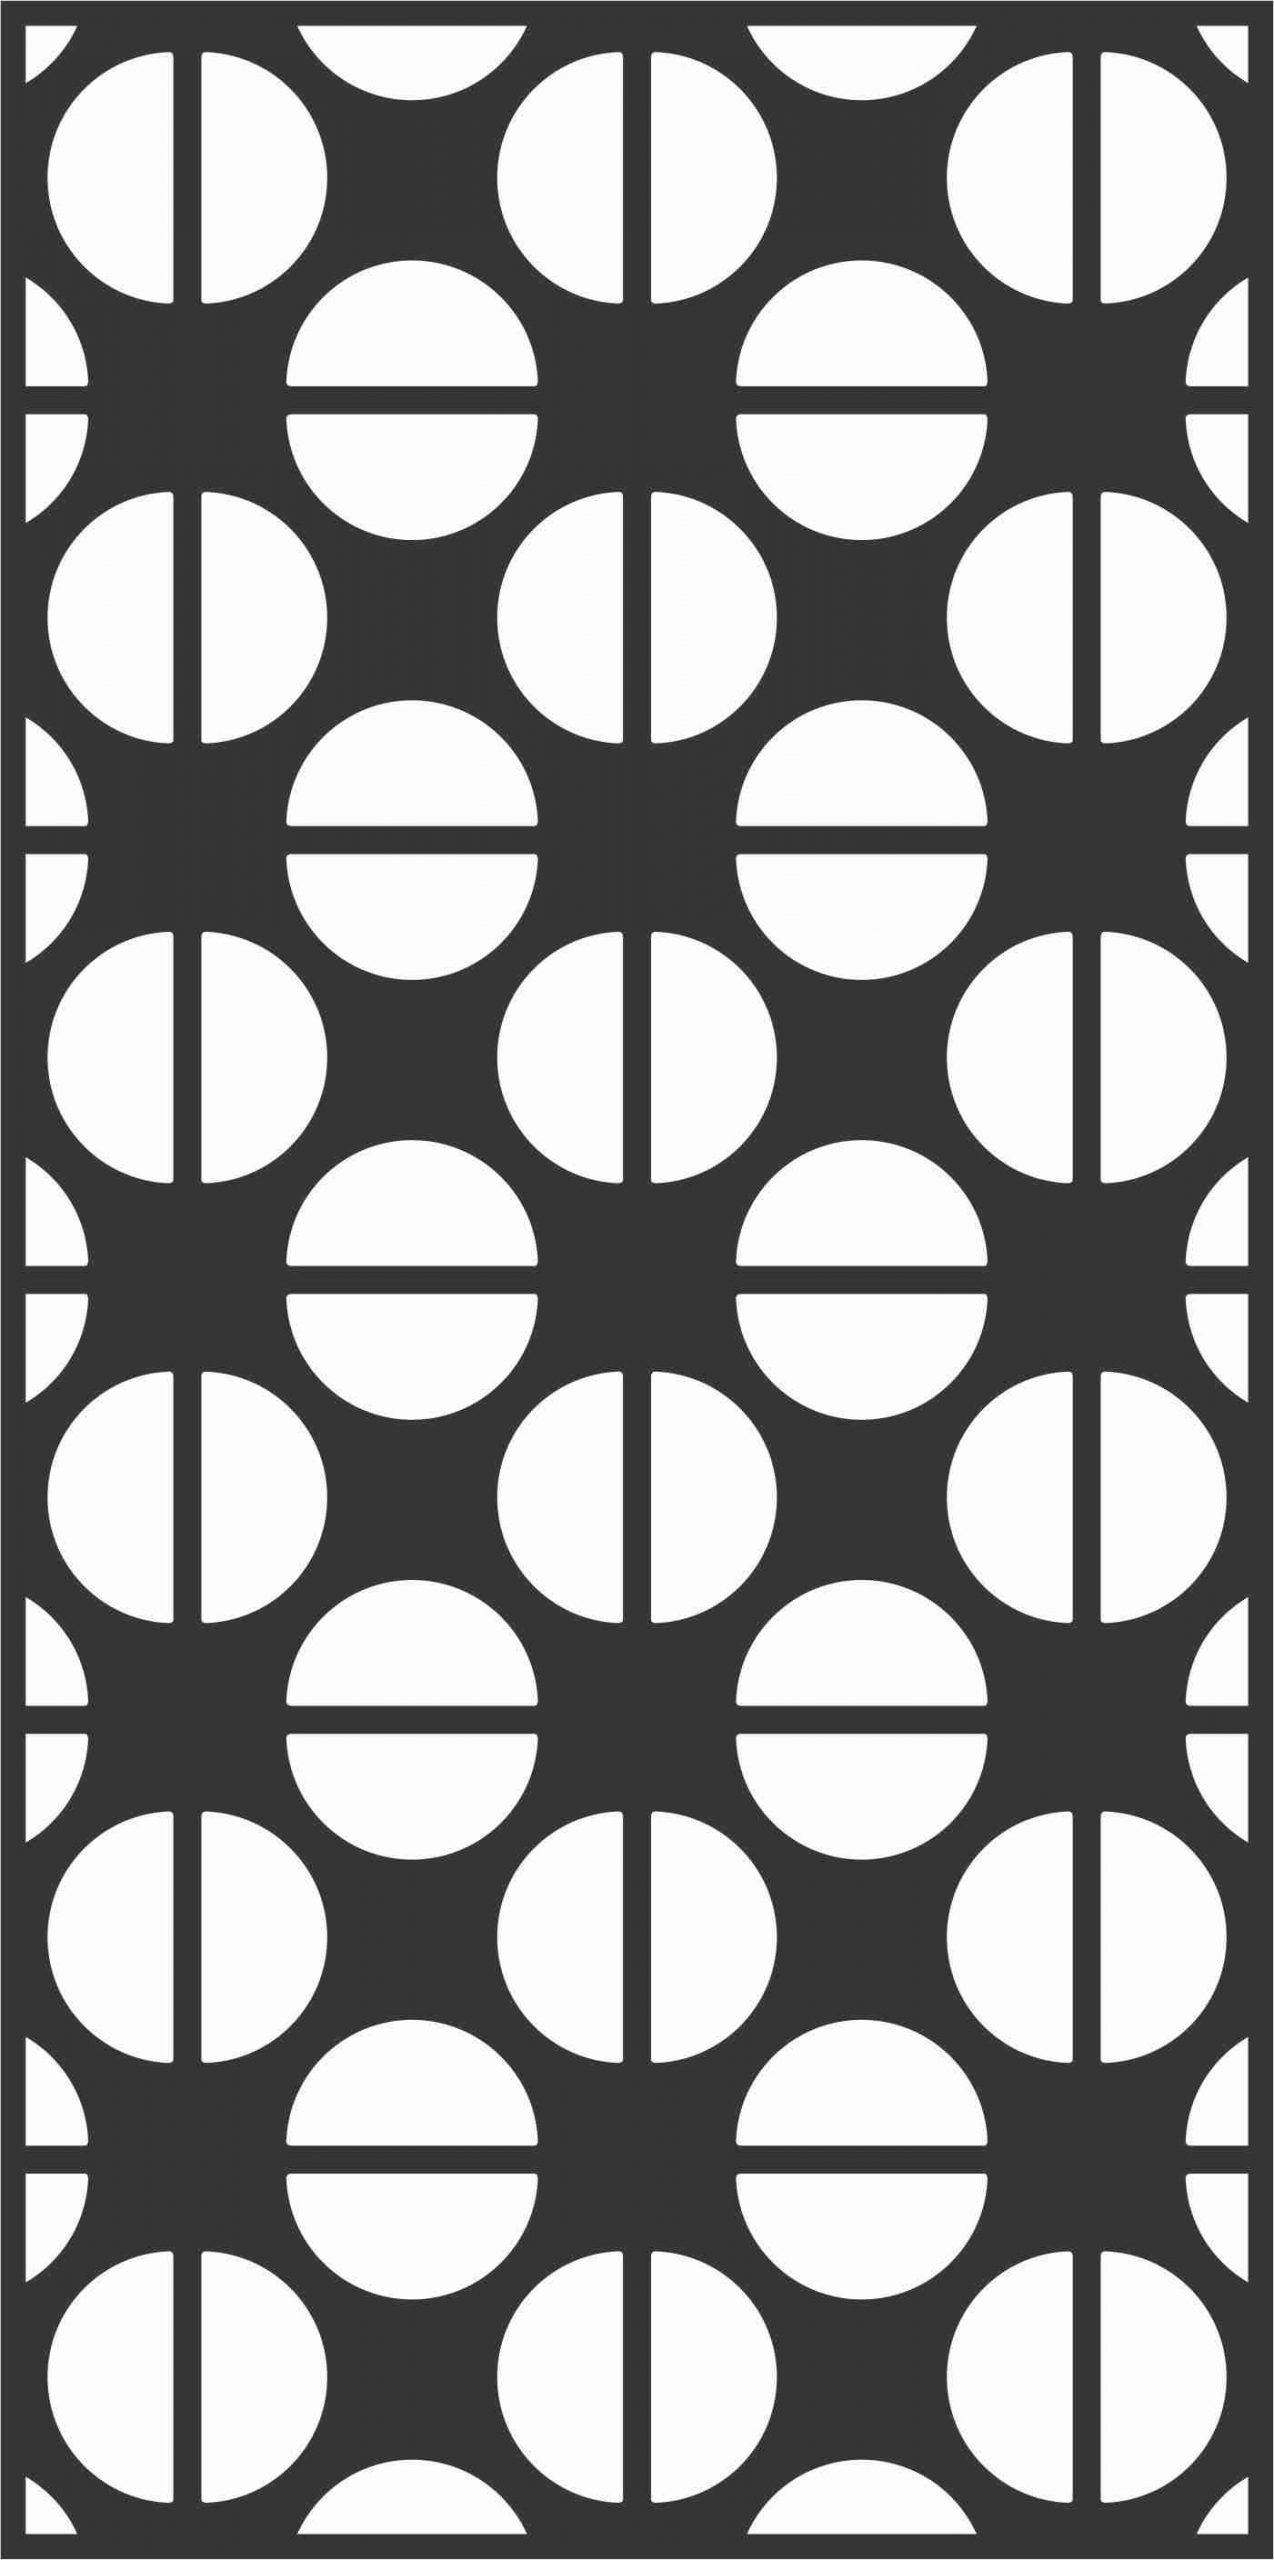 Decorative Screen Patterns For Laser Cutting 74 Free DXF File